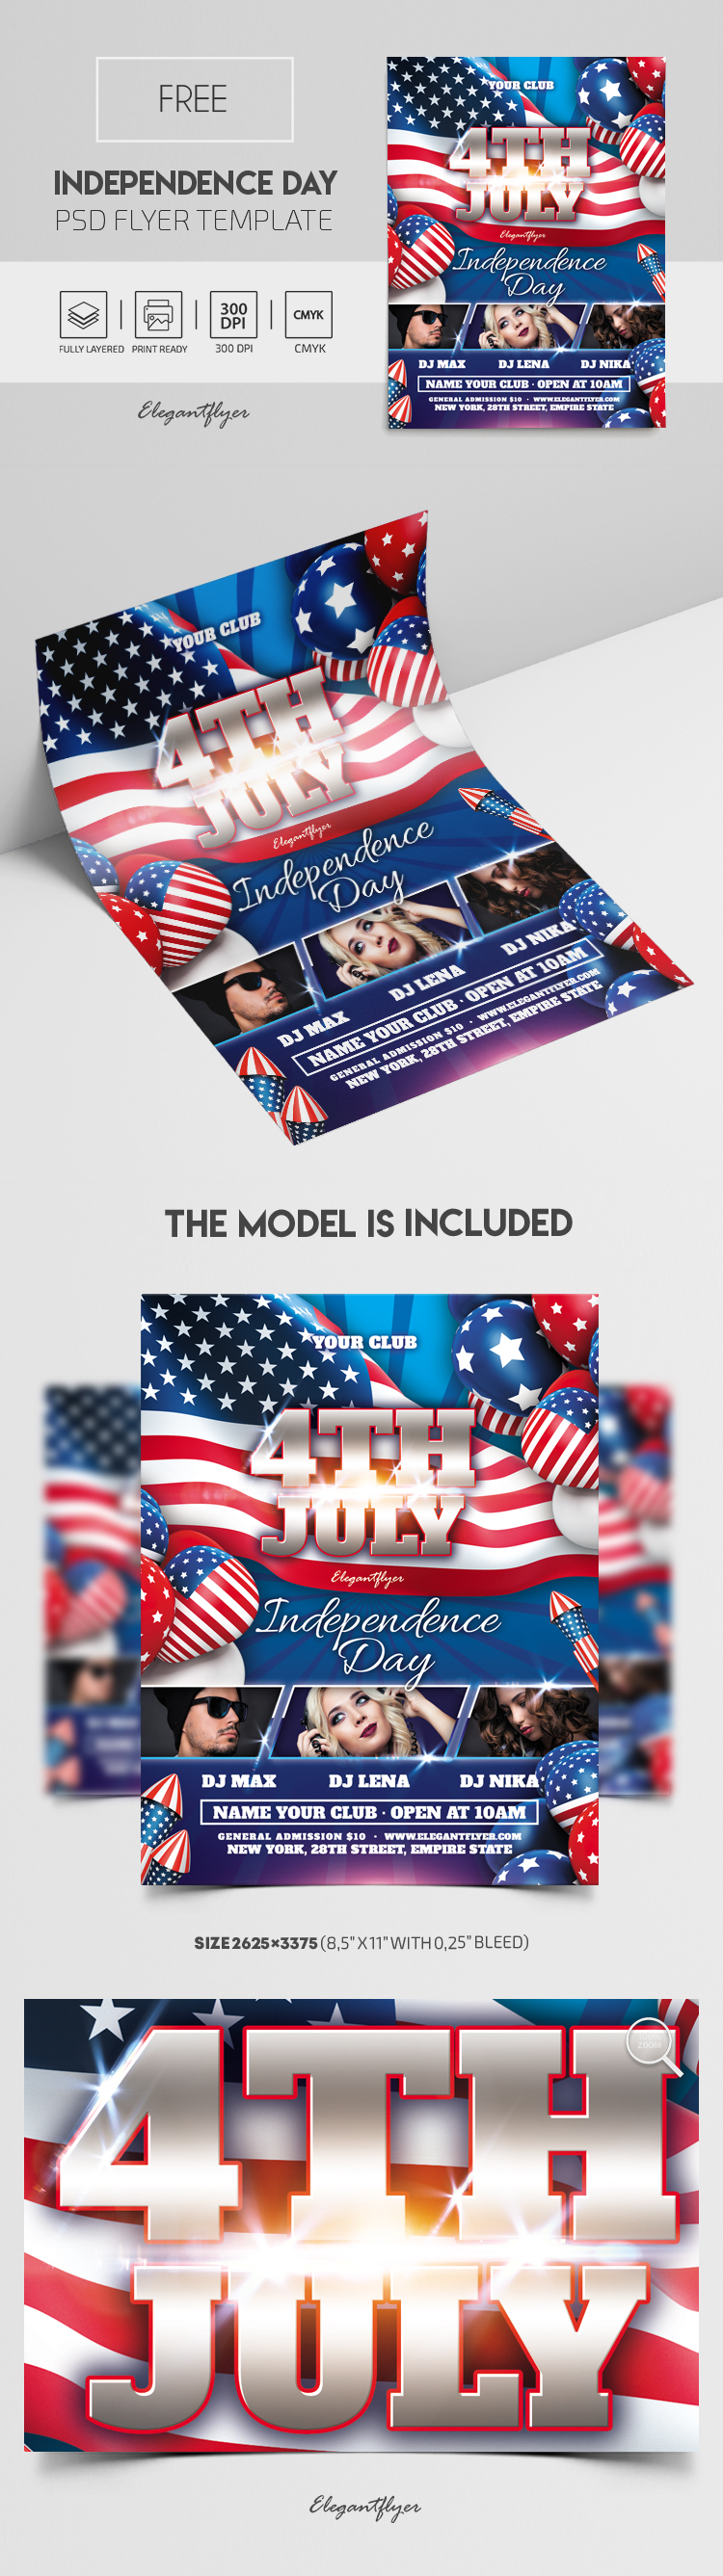 Independence Day – Free PSD Flyer Template